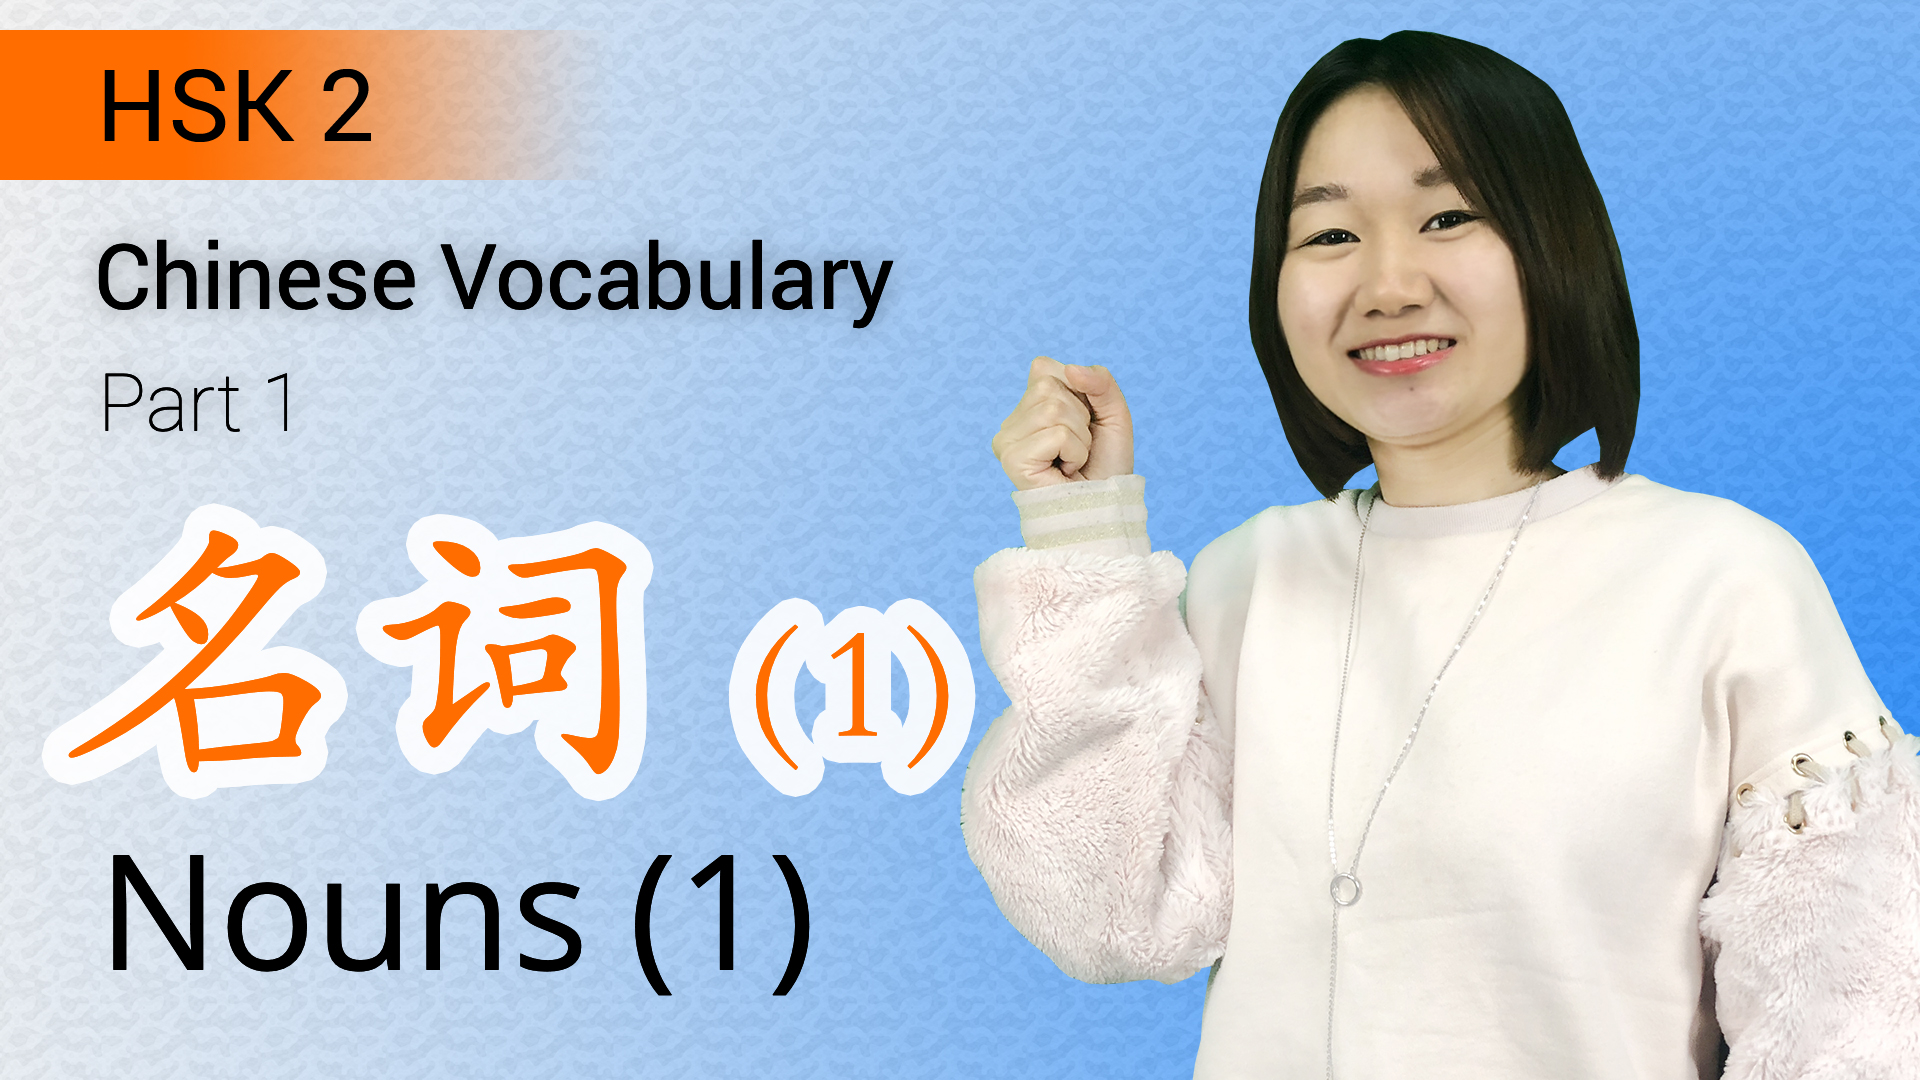 HSK 2 vocabulary: nouns (1)  - HSK 2 词汇: 名词(1)